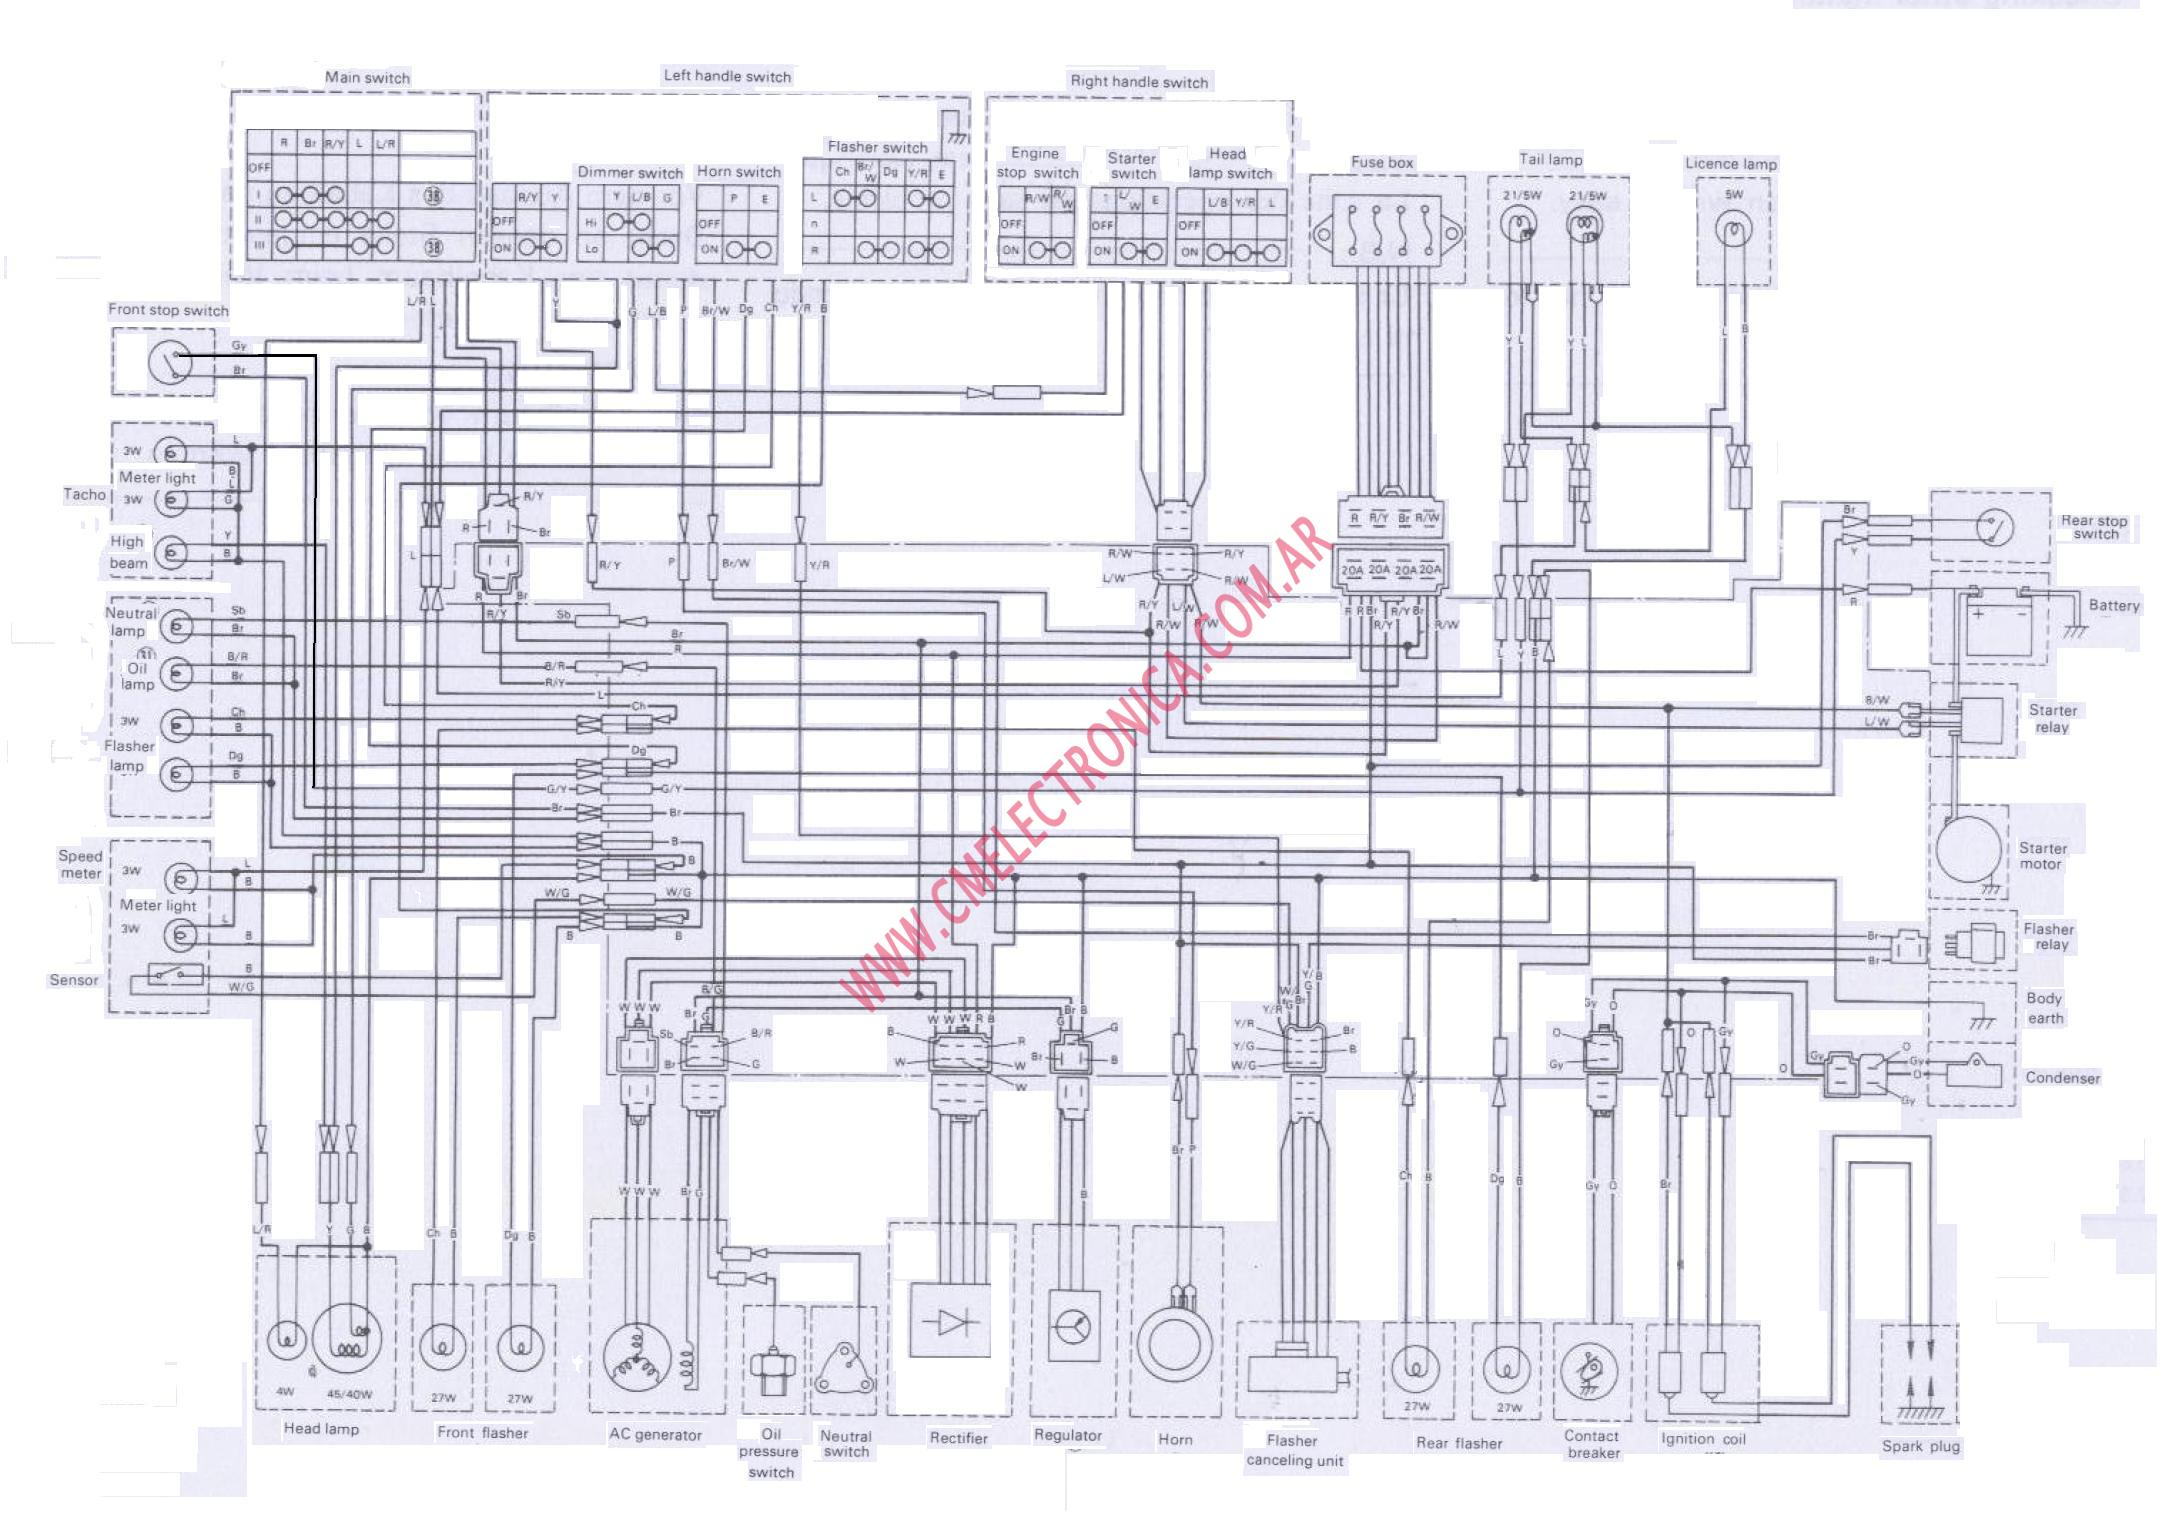 79 Yamaha Yamahopper Wiring Diagrams Motorcycle Diagram Rz350 Pin 1979 Xs1100 Cafe Racer Image Search Results On